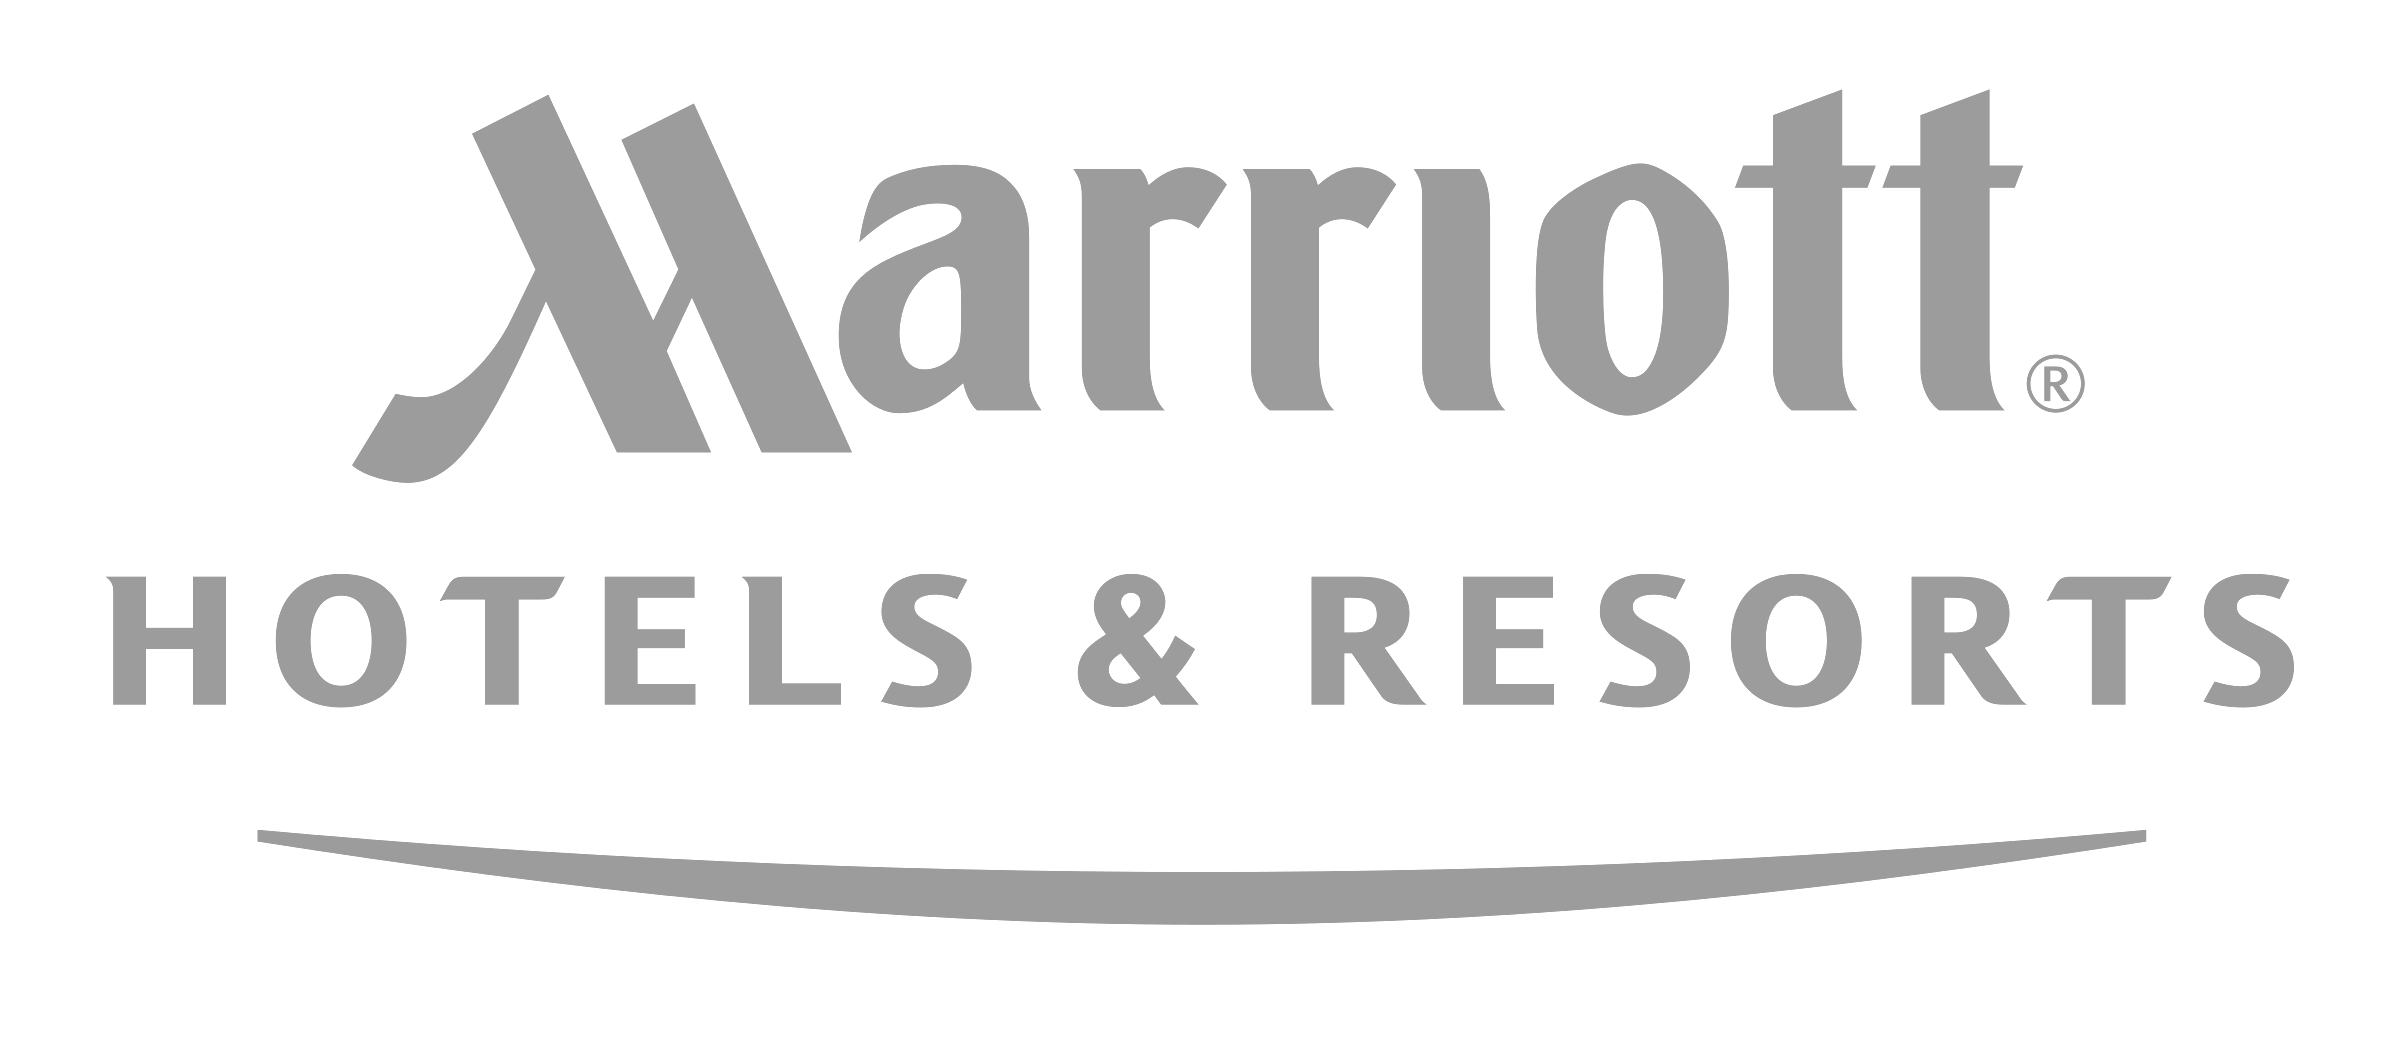 marriott-hotels-resorts-logo-png-transpa